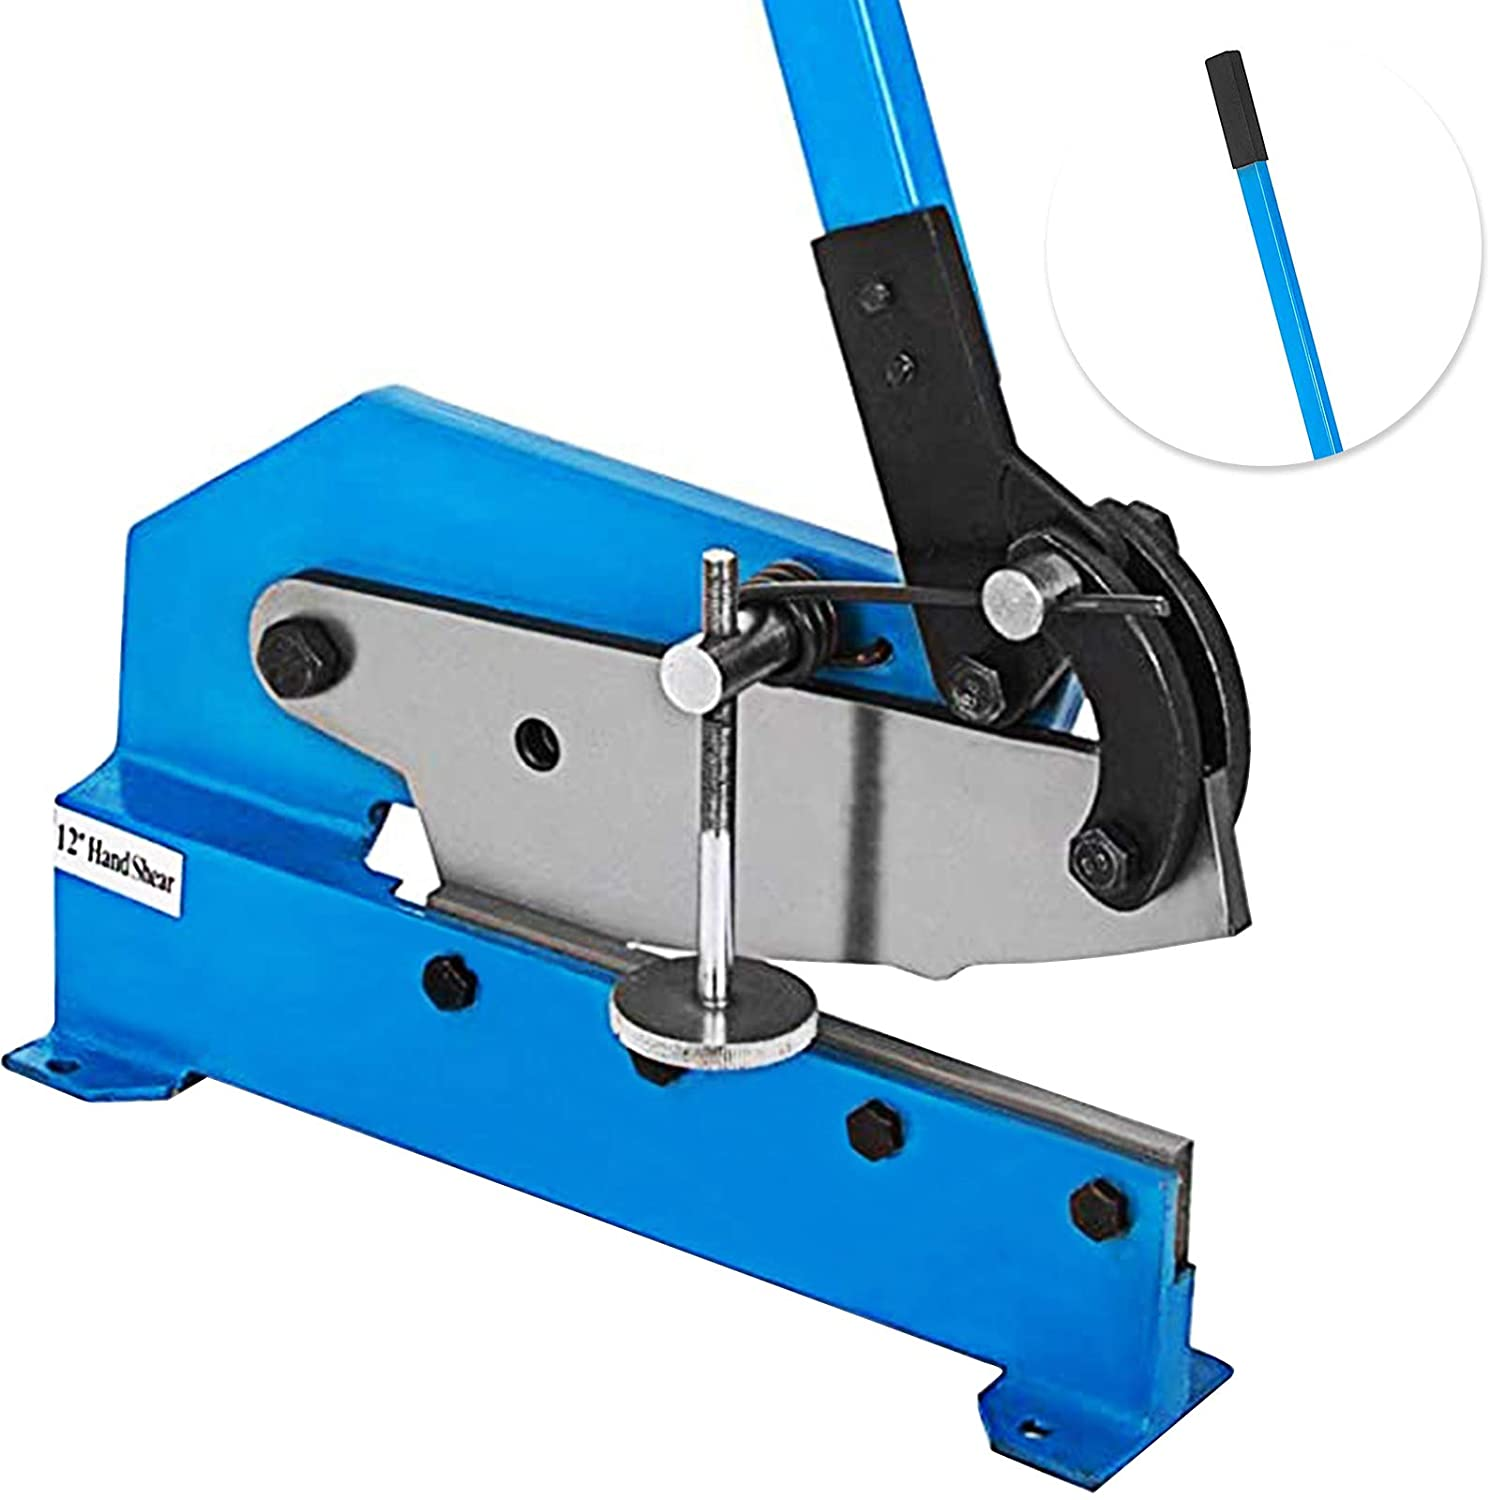 VEVOR Hand Plate Shear 12,Manual Metal Cutter Cutting Thickness1/4 Inch Max,Metal Steel Frame Snip Machine Benchtop 1/2 Inch Rod,for Shear Carbon Steel Plates and Bars